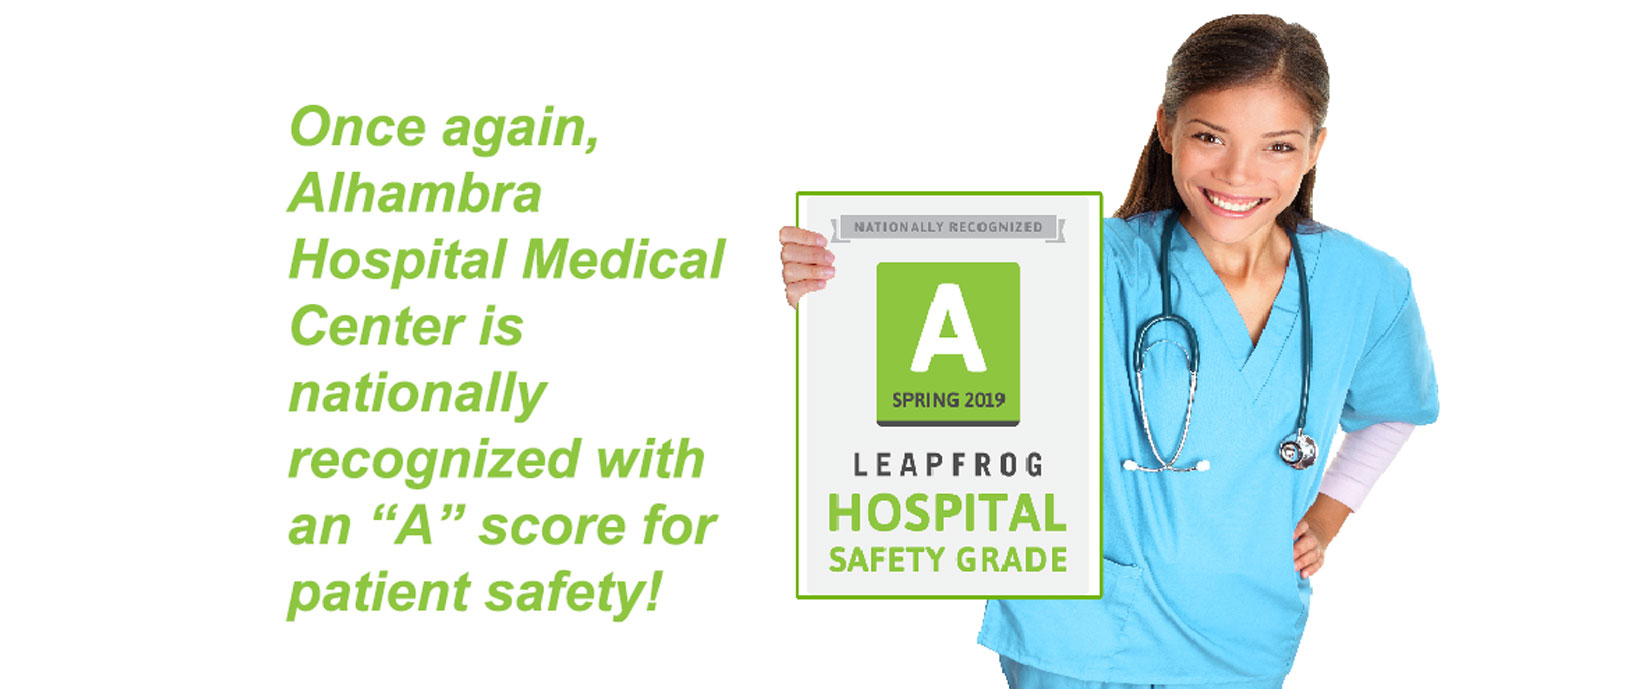 "Alhambra Hospital Medical Center is nationally recognized with an ""A"" score for patient safety. A nurse dressed in light blue scrubs is smiling."